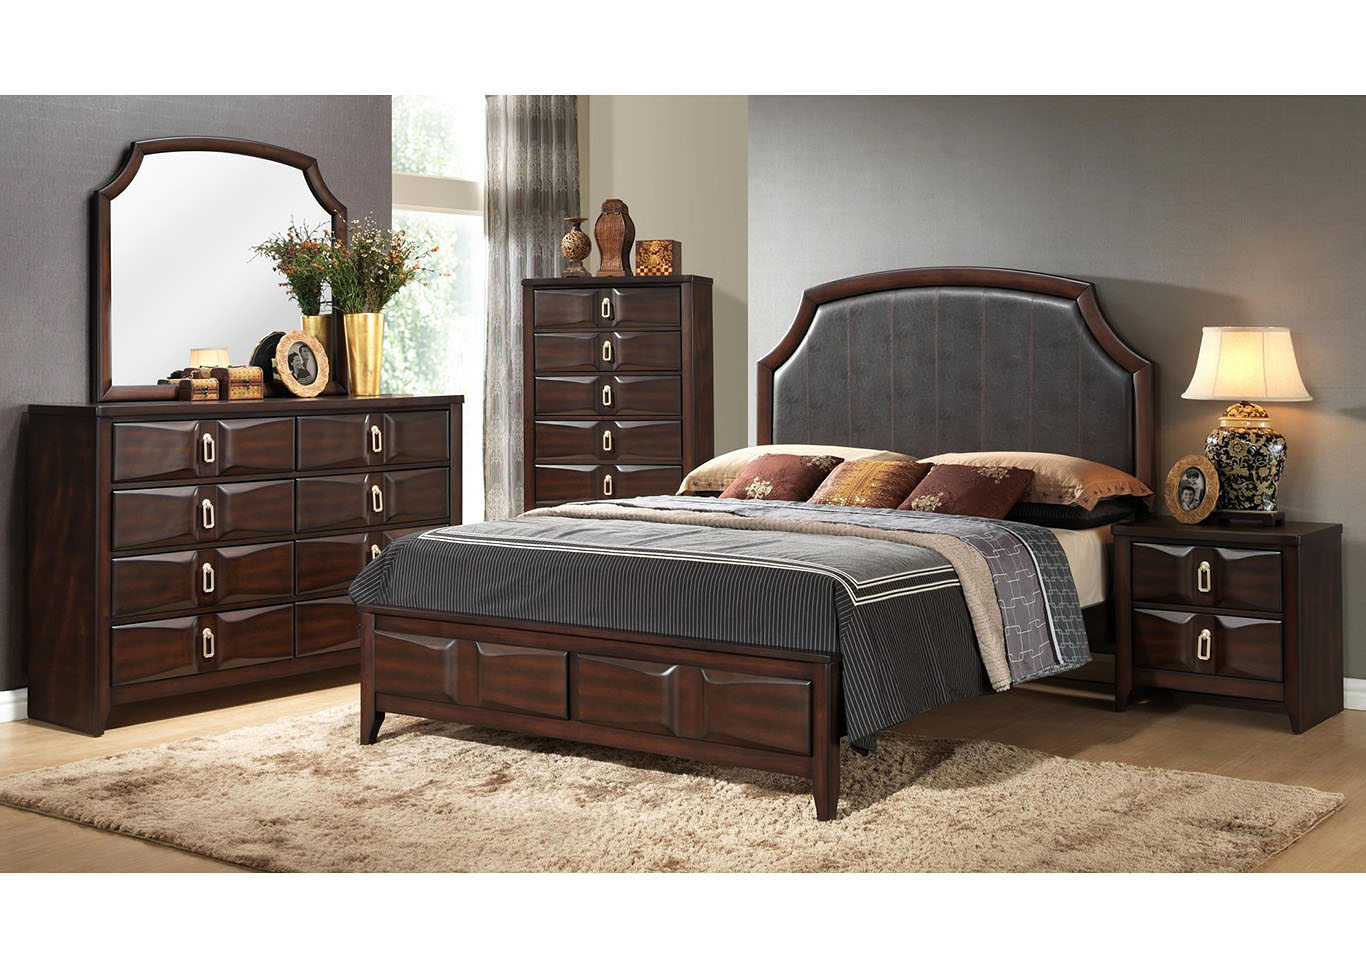 Brown Storage Queen 5 Piece Bedroom Set W/ Nightstand, Chest, Dresser & Mirror,Global Trading